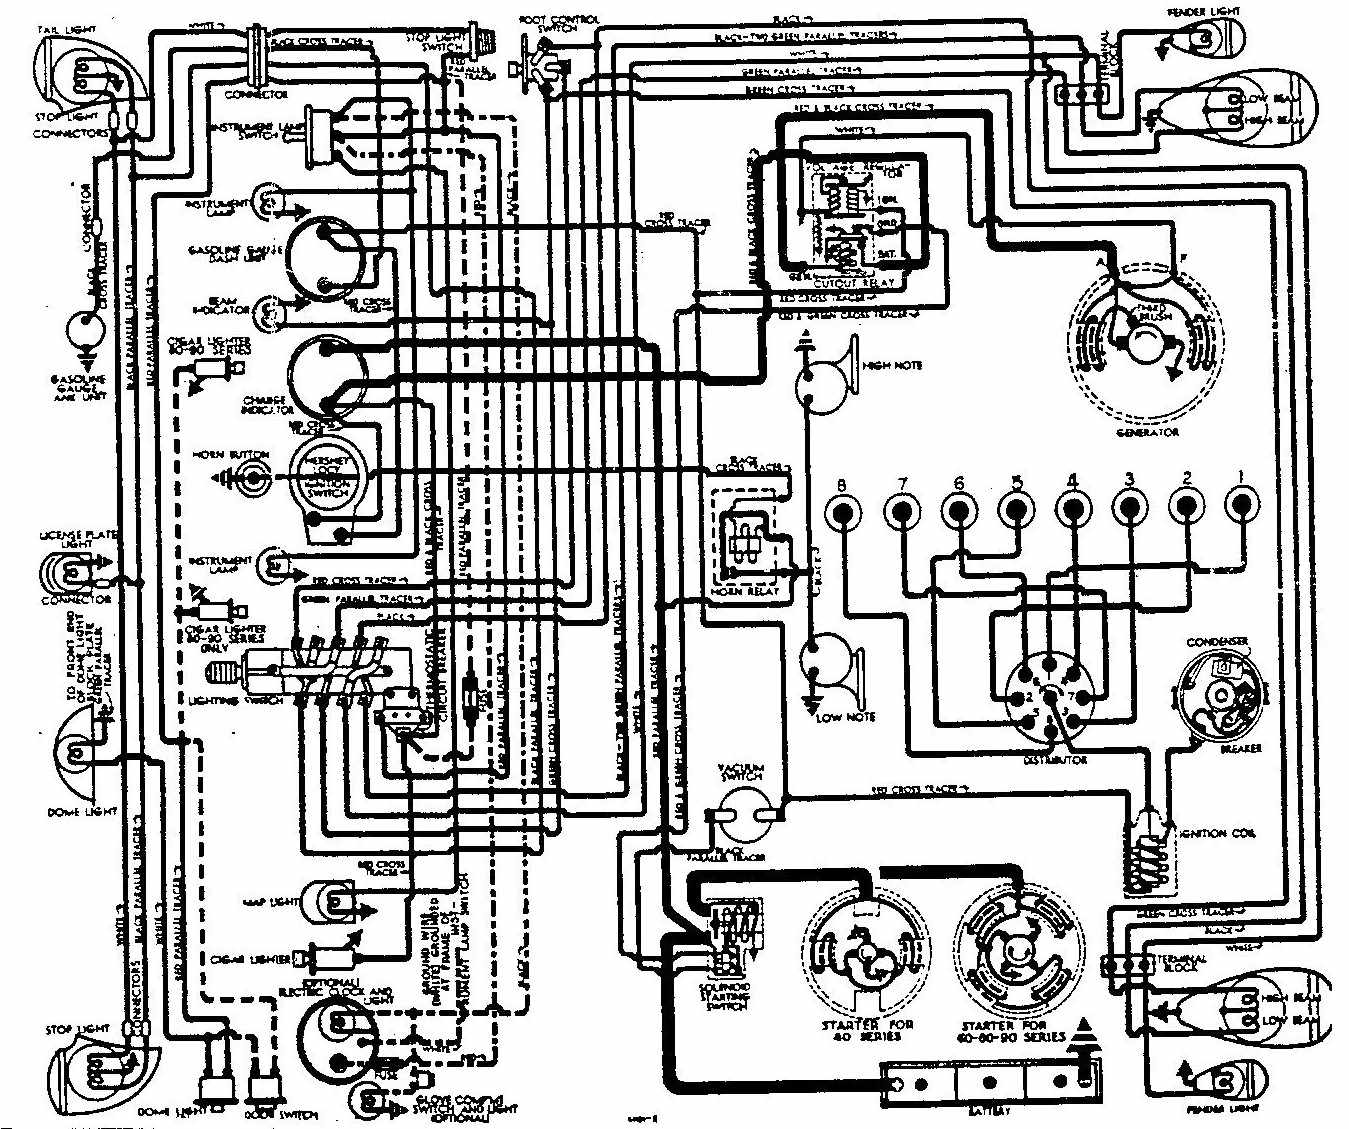 1953 Buick Starter Solenoid Wiring Diagram Diy Enthusiasts How To Wire A 53 Ford Enthusiast Diagrams U2022 Rh Rasalibre Co Tractor